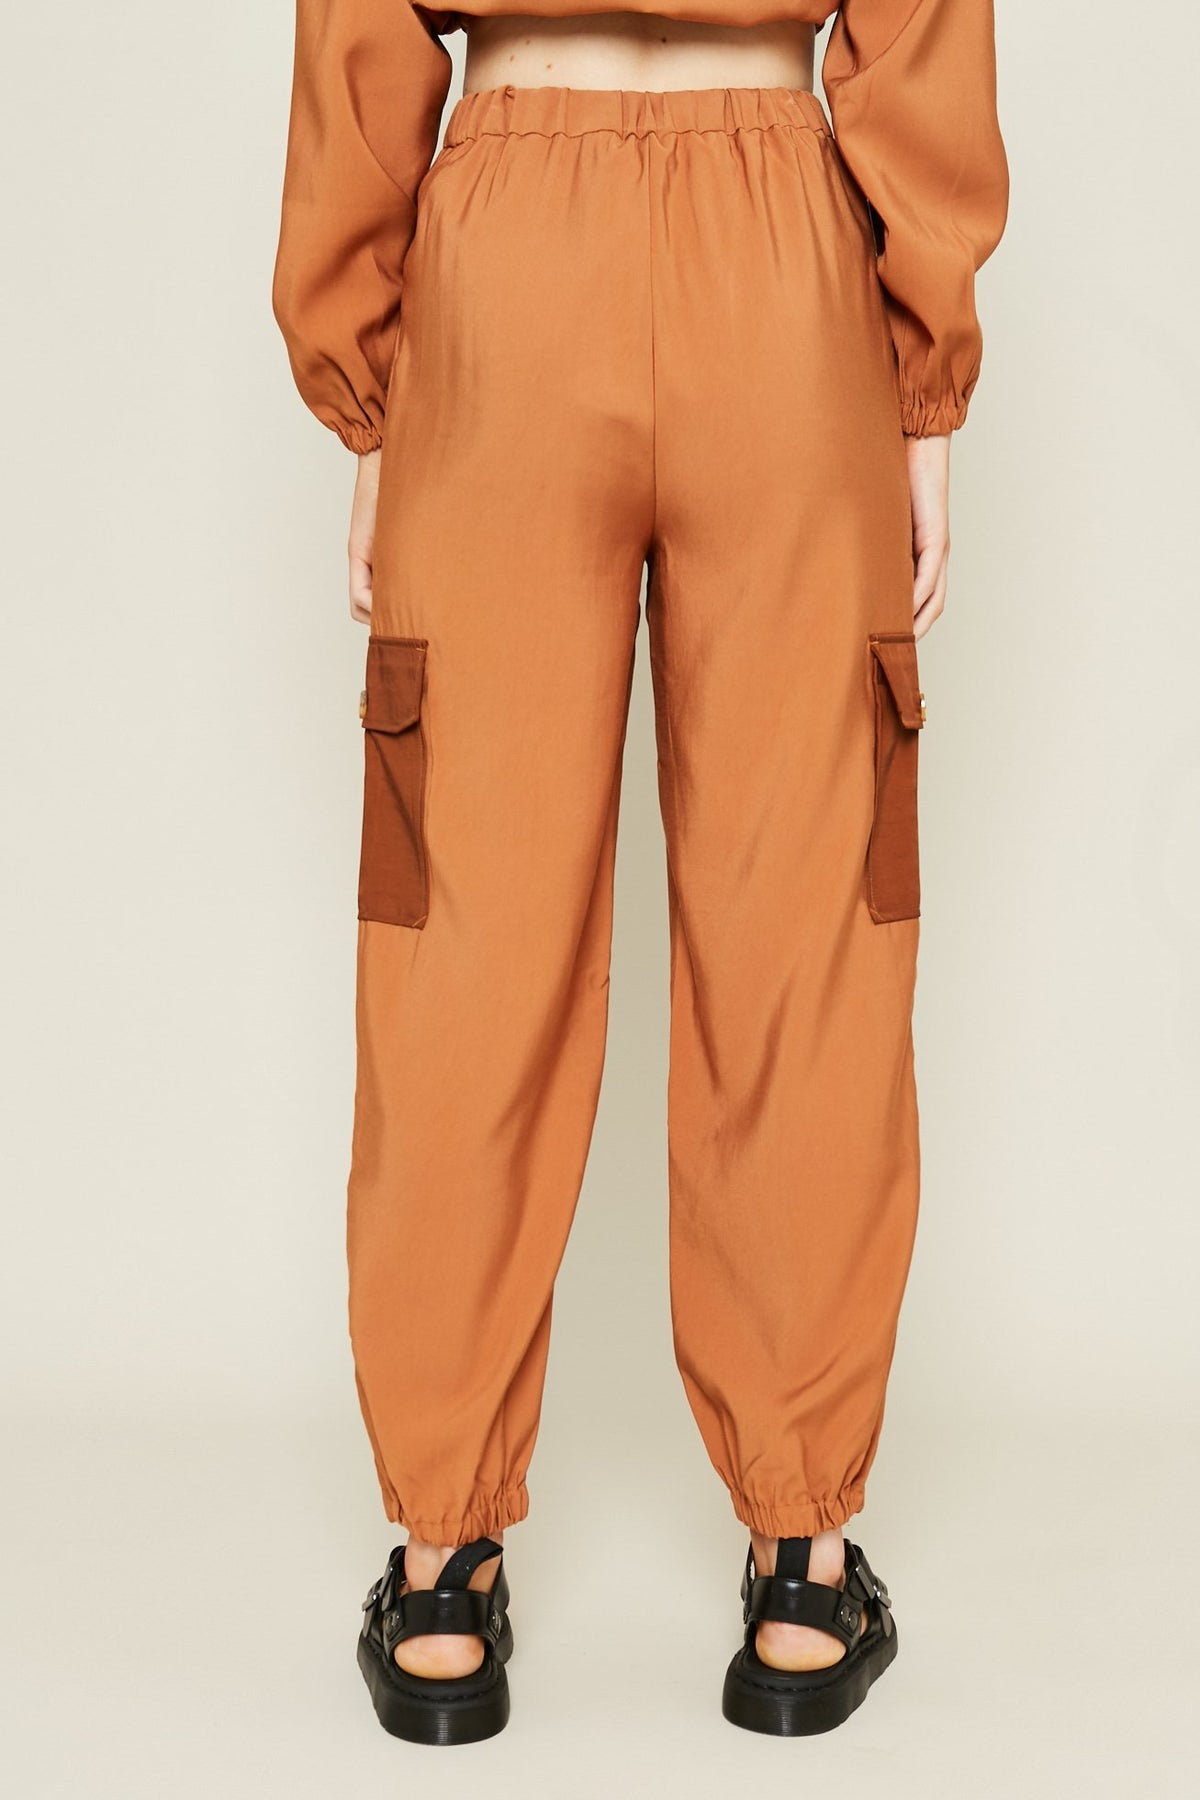 THE PHELPS PANT